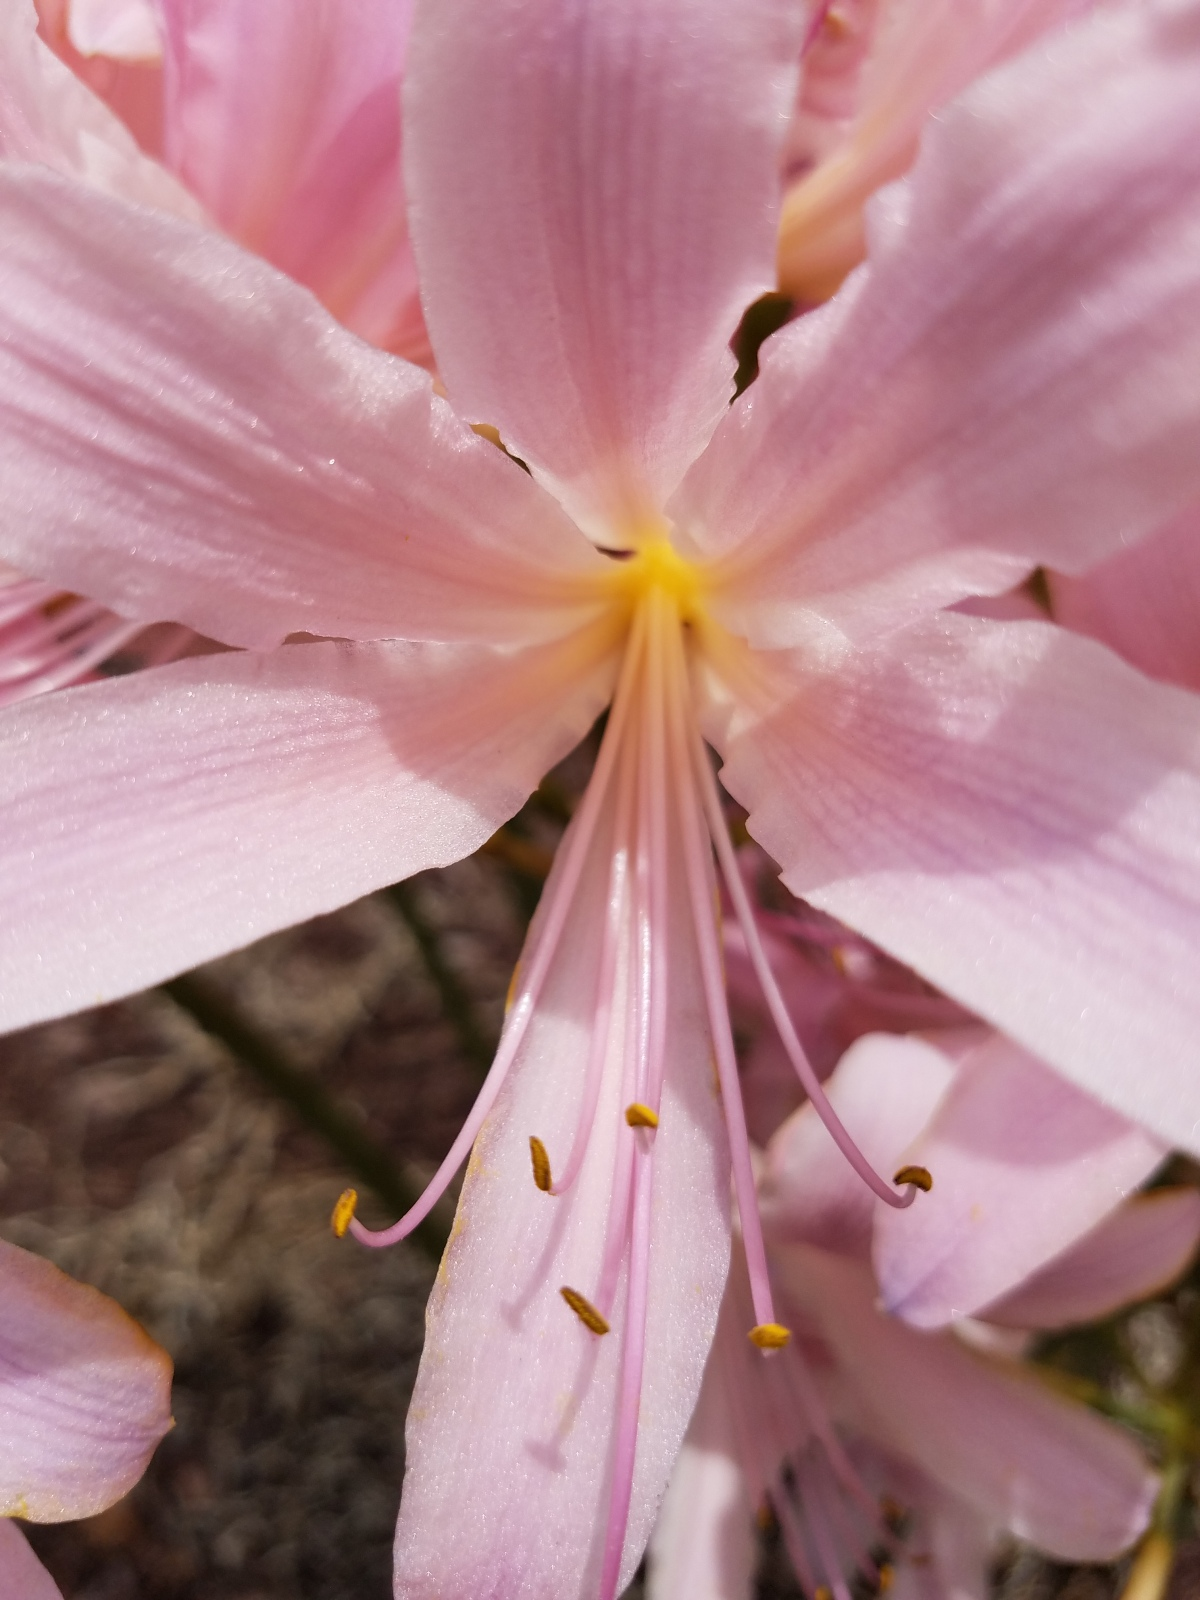 Surprise Lilies (Naked Ladies)